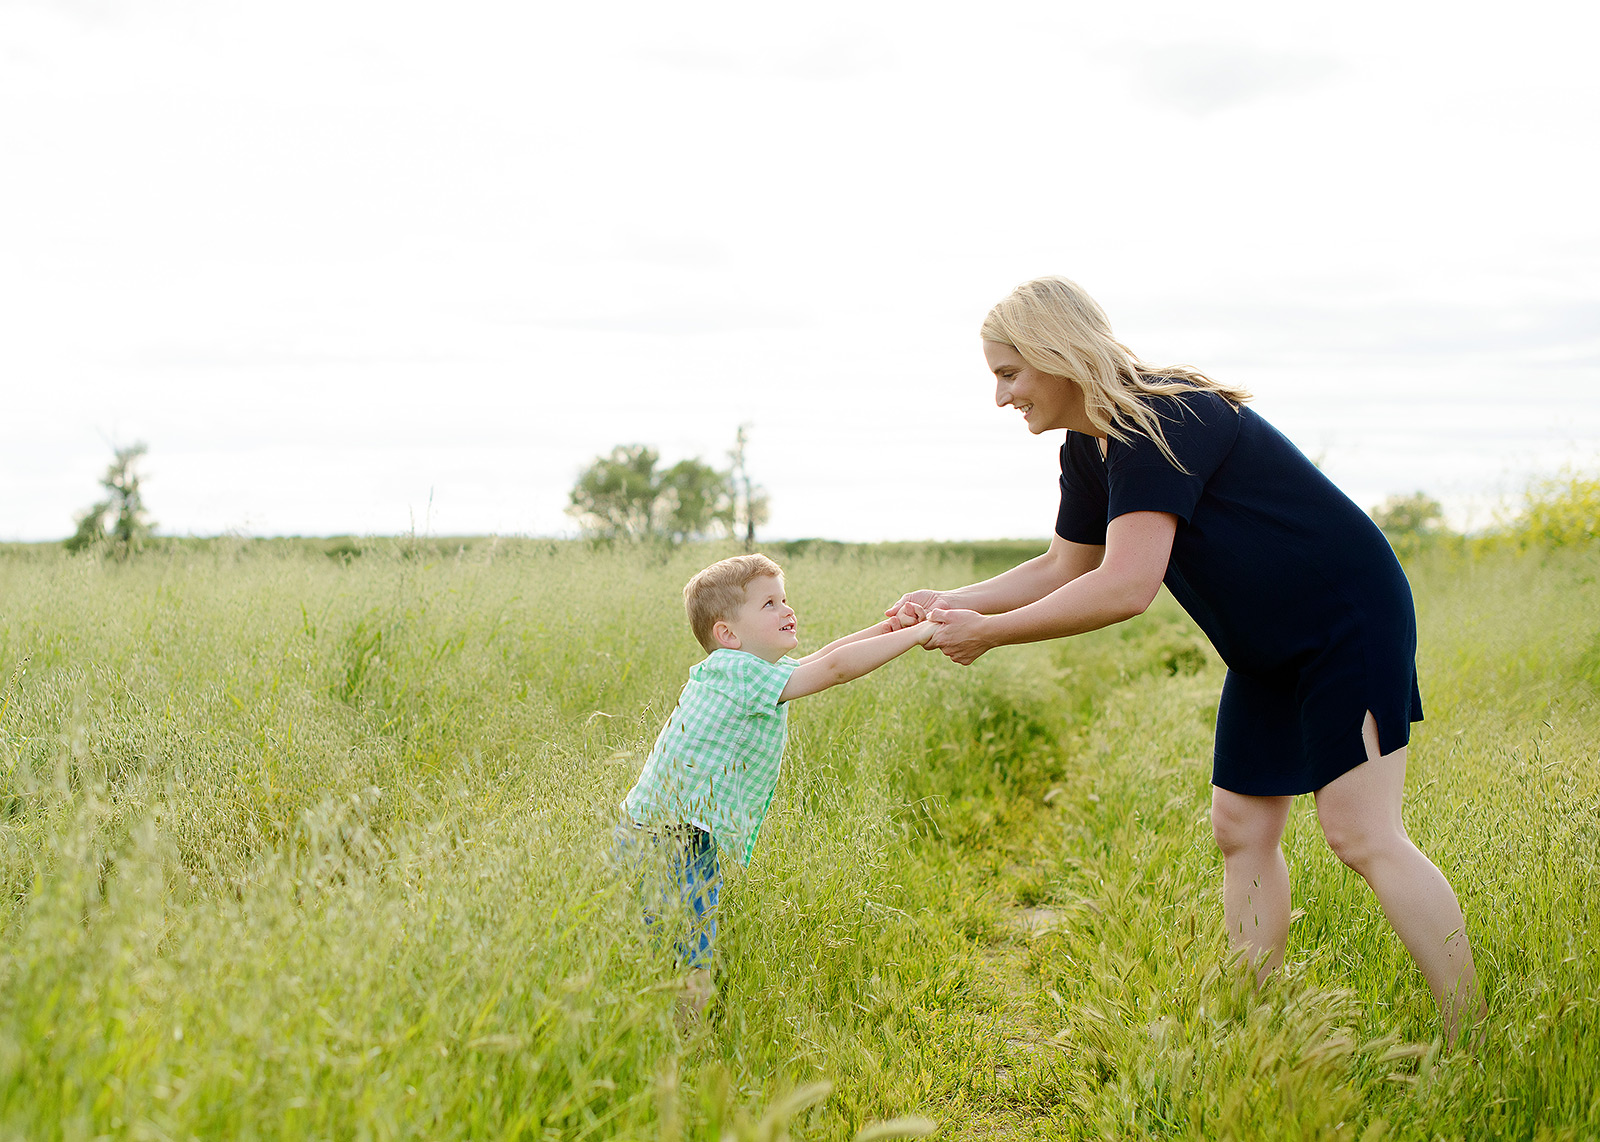 son dancing with his mother in the tall green grass for family picture day